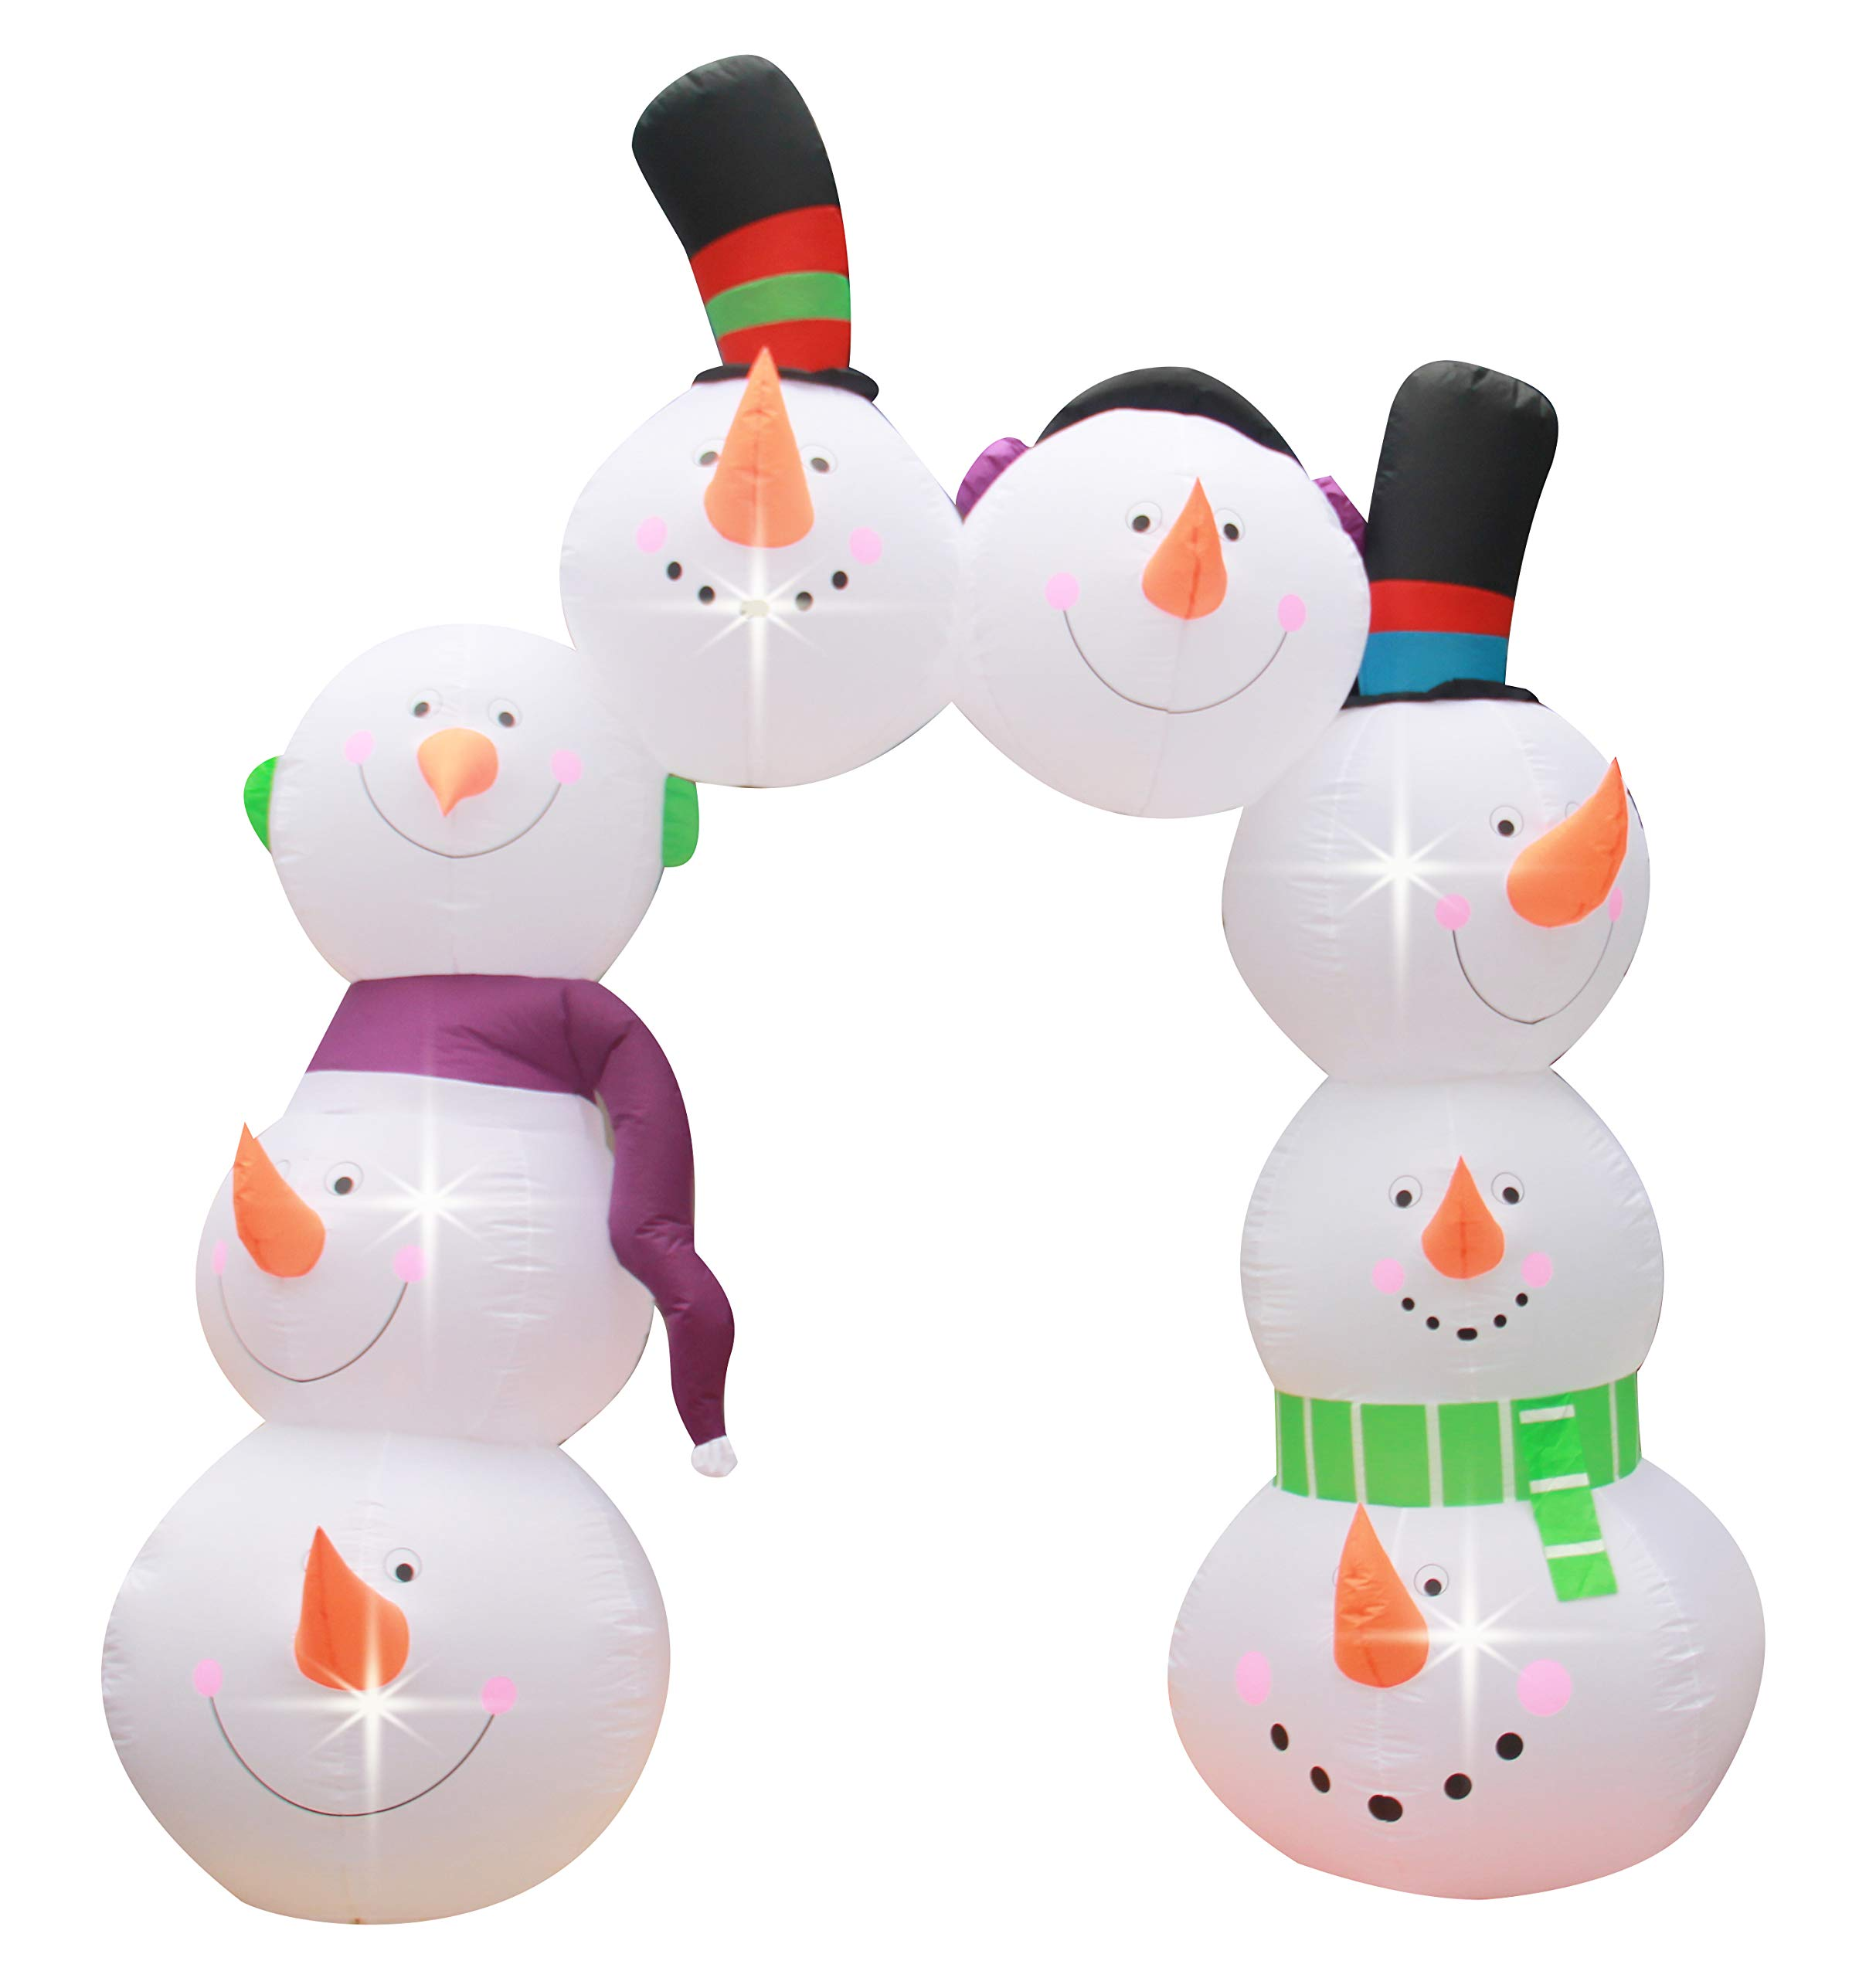 BIGJOYS 10 Ft Inflatable Christmas Snowman Arch Archway Decoration for Indoors Outdoors Yad Home Garden Lawn